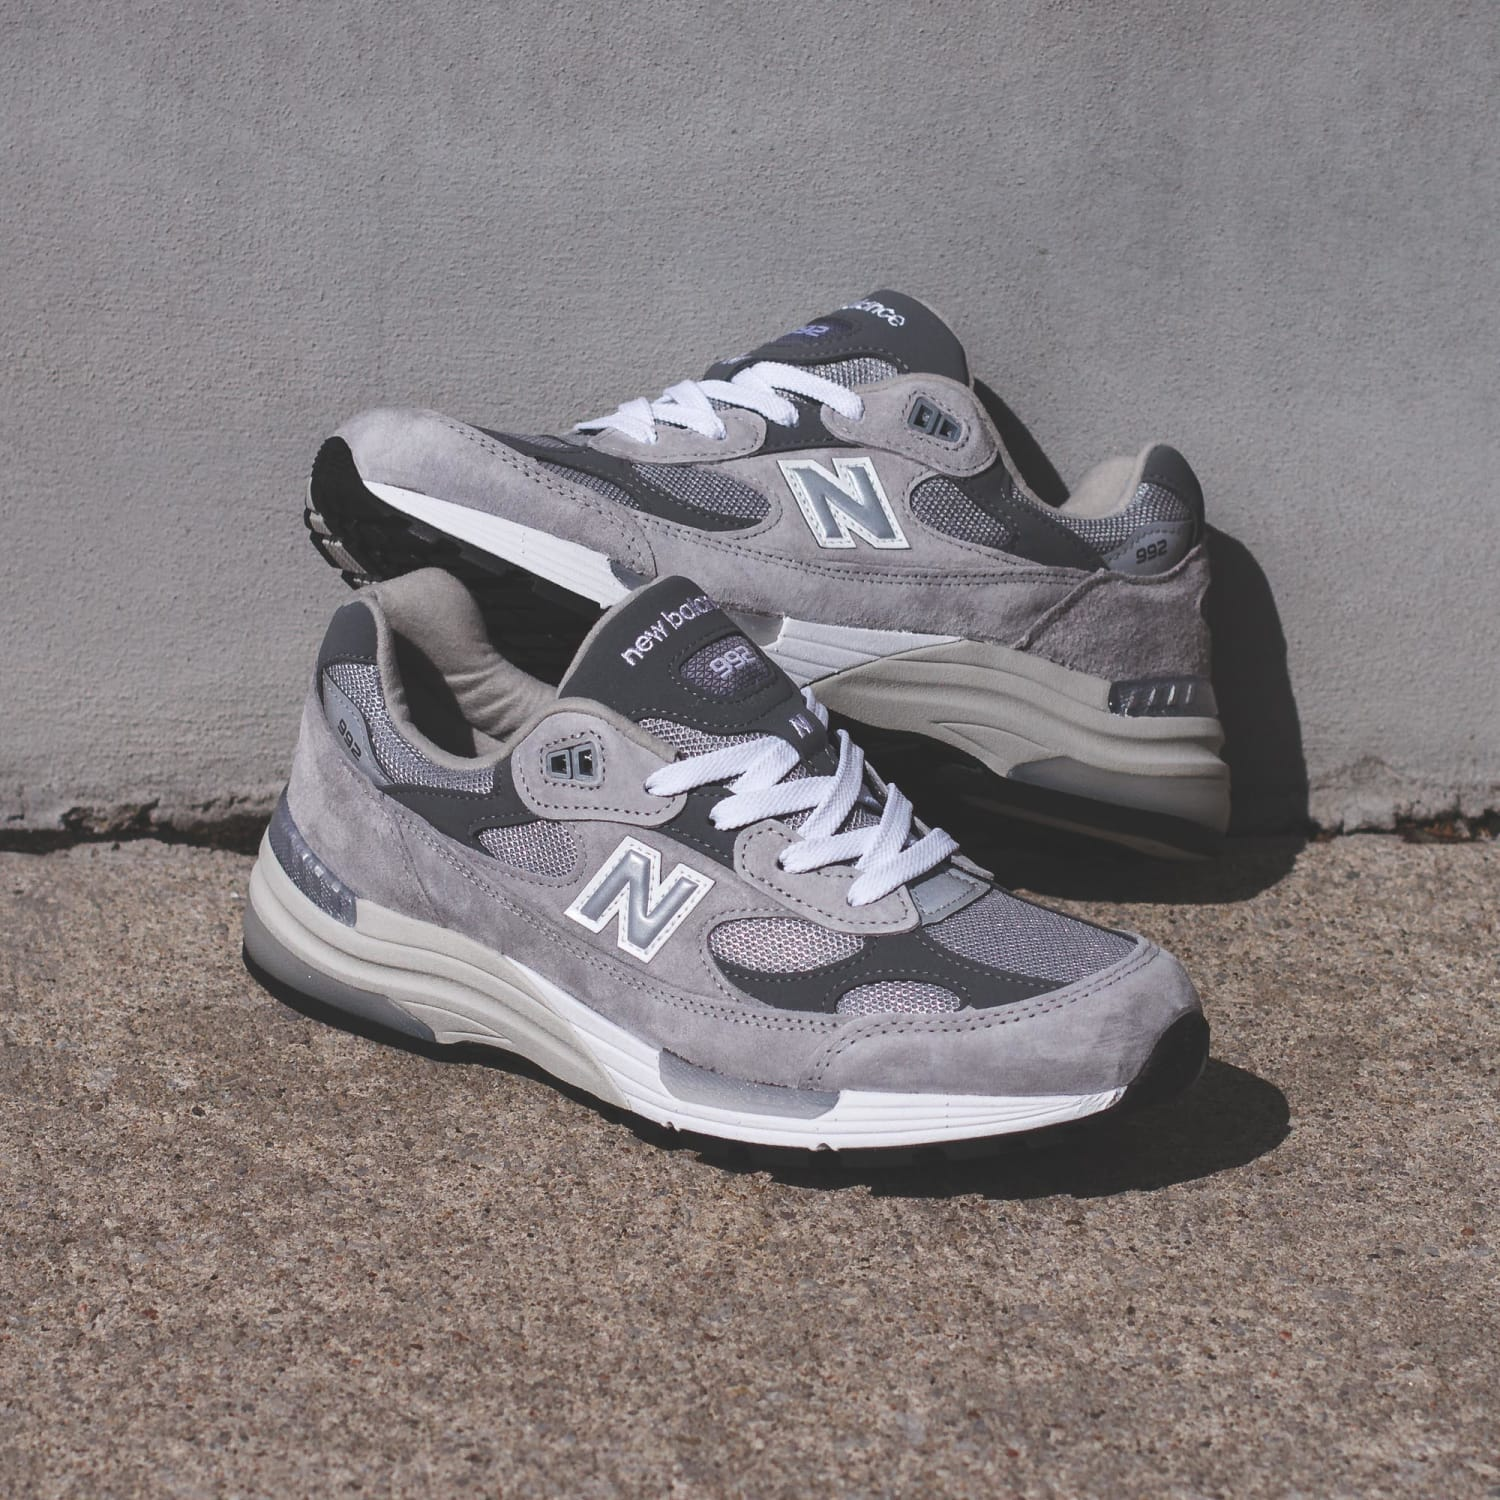 New Balance 992's Are Back!